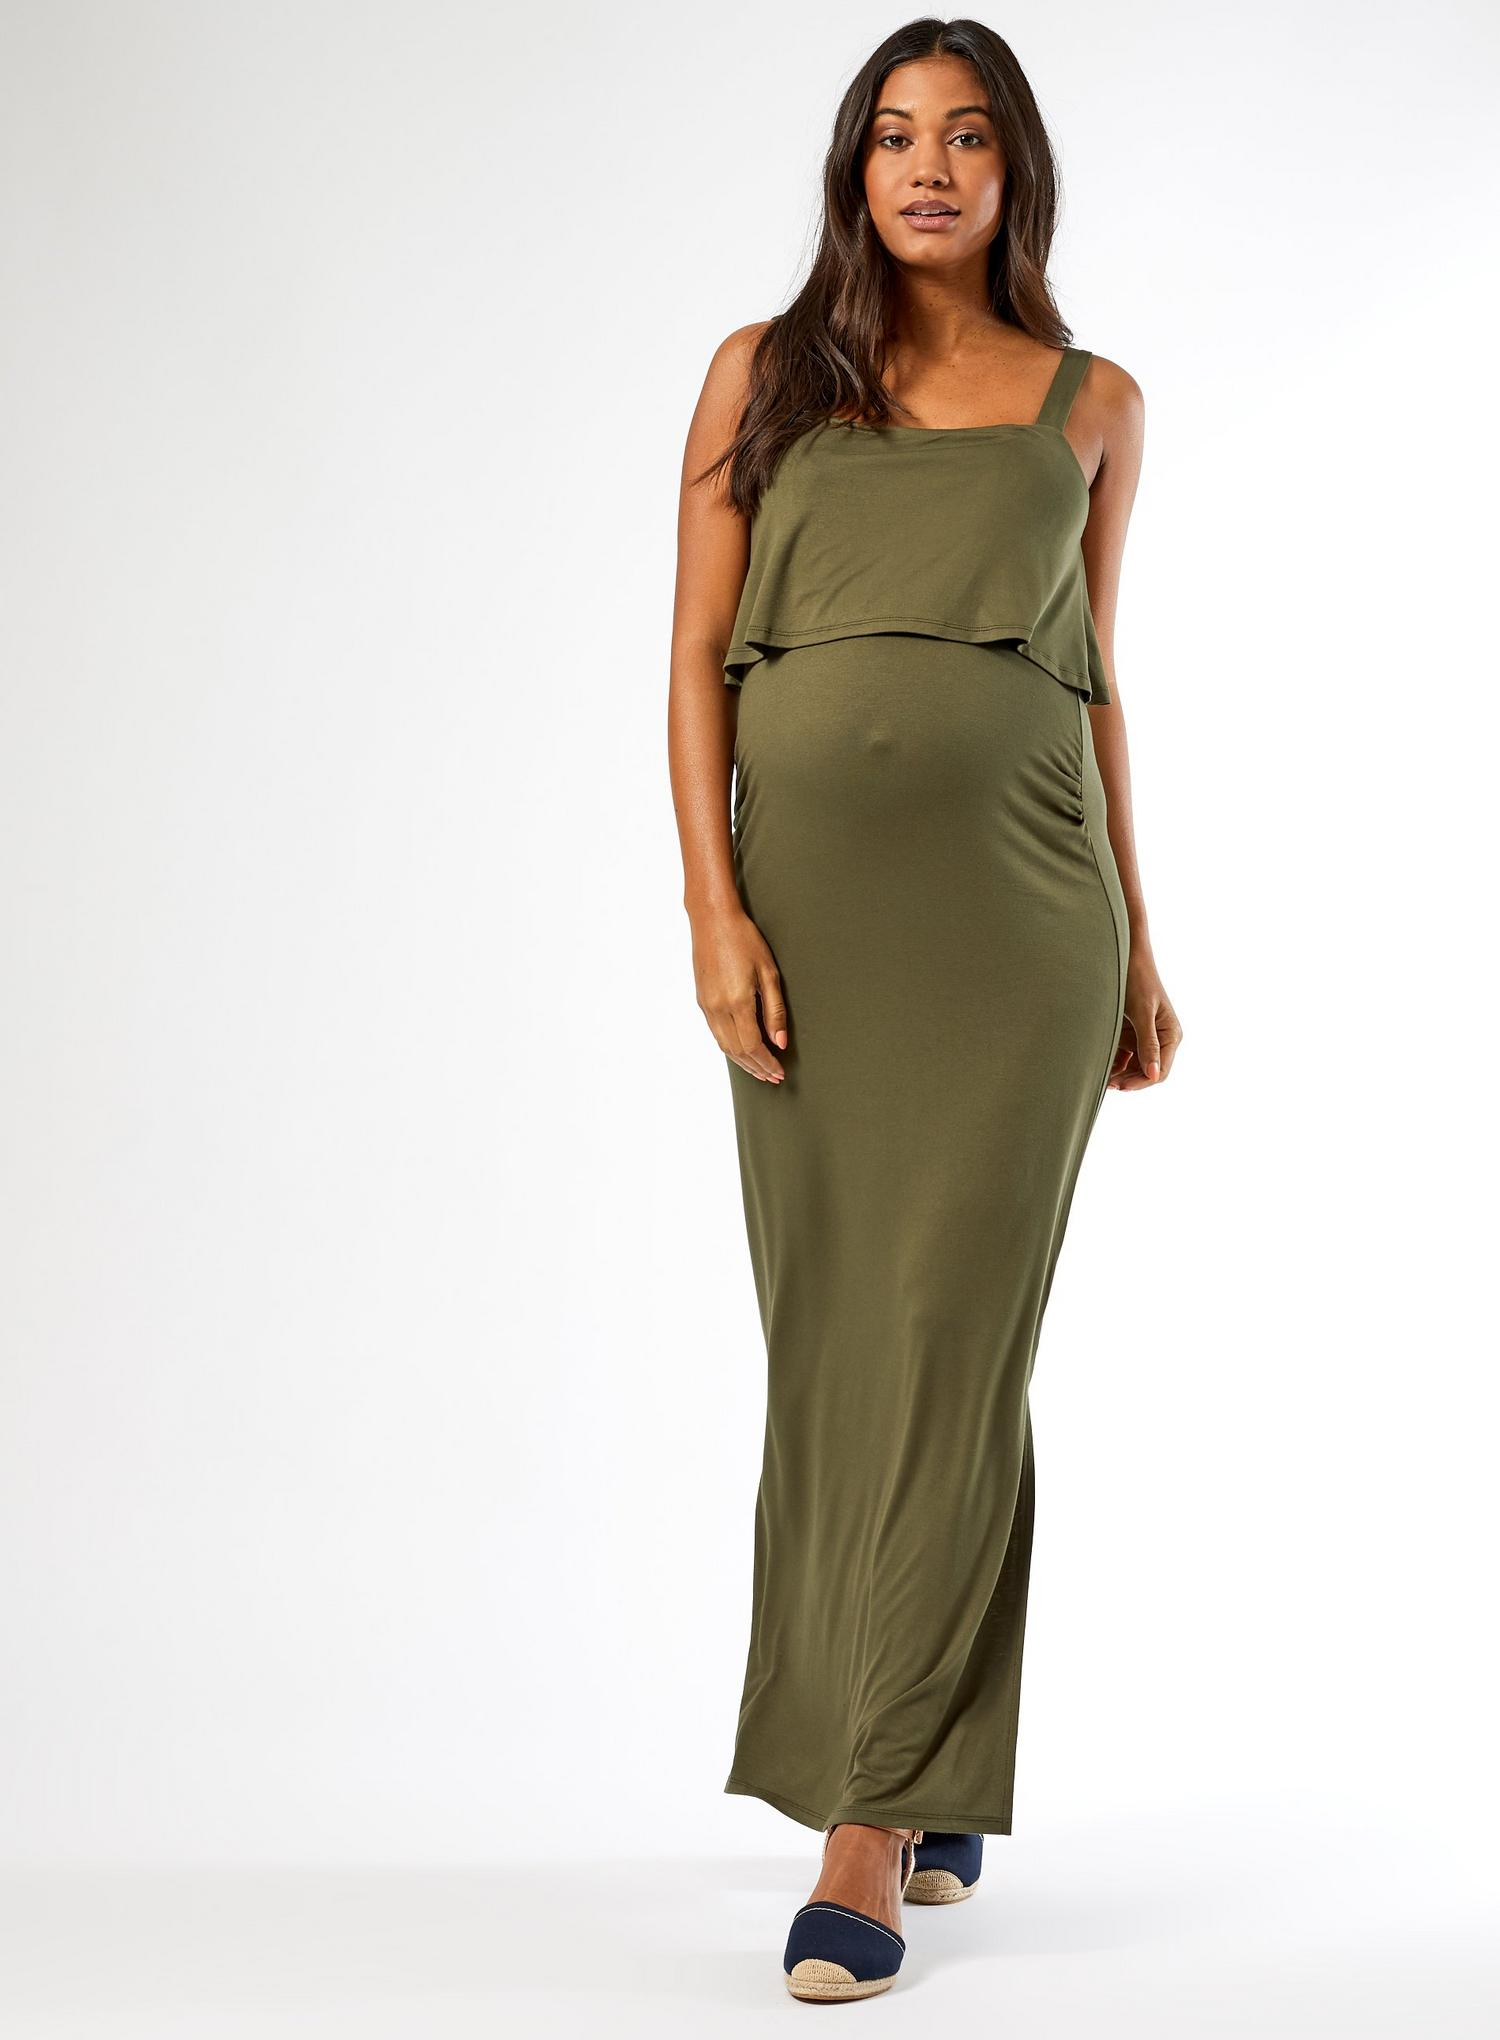 130 Maternity Khaki Camisole Maxi Dress image number 3